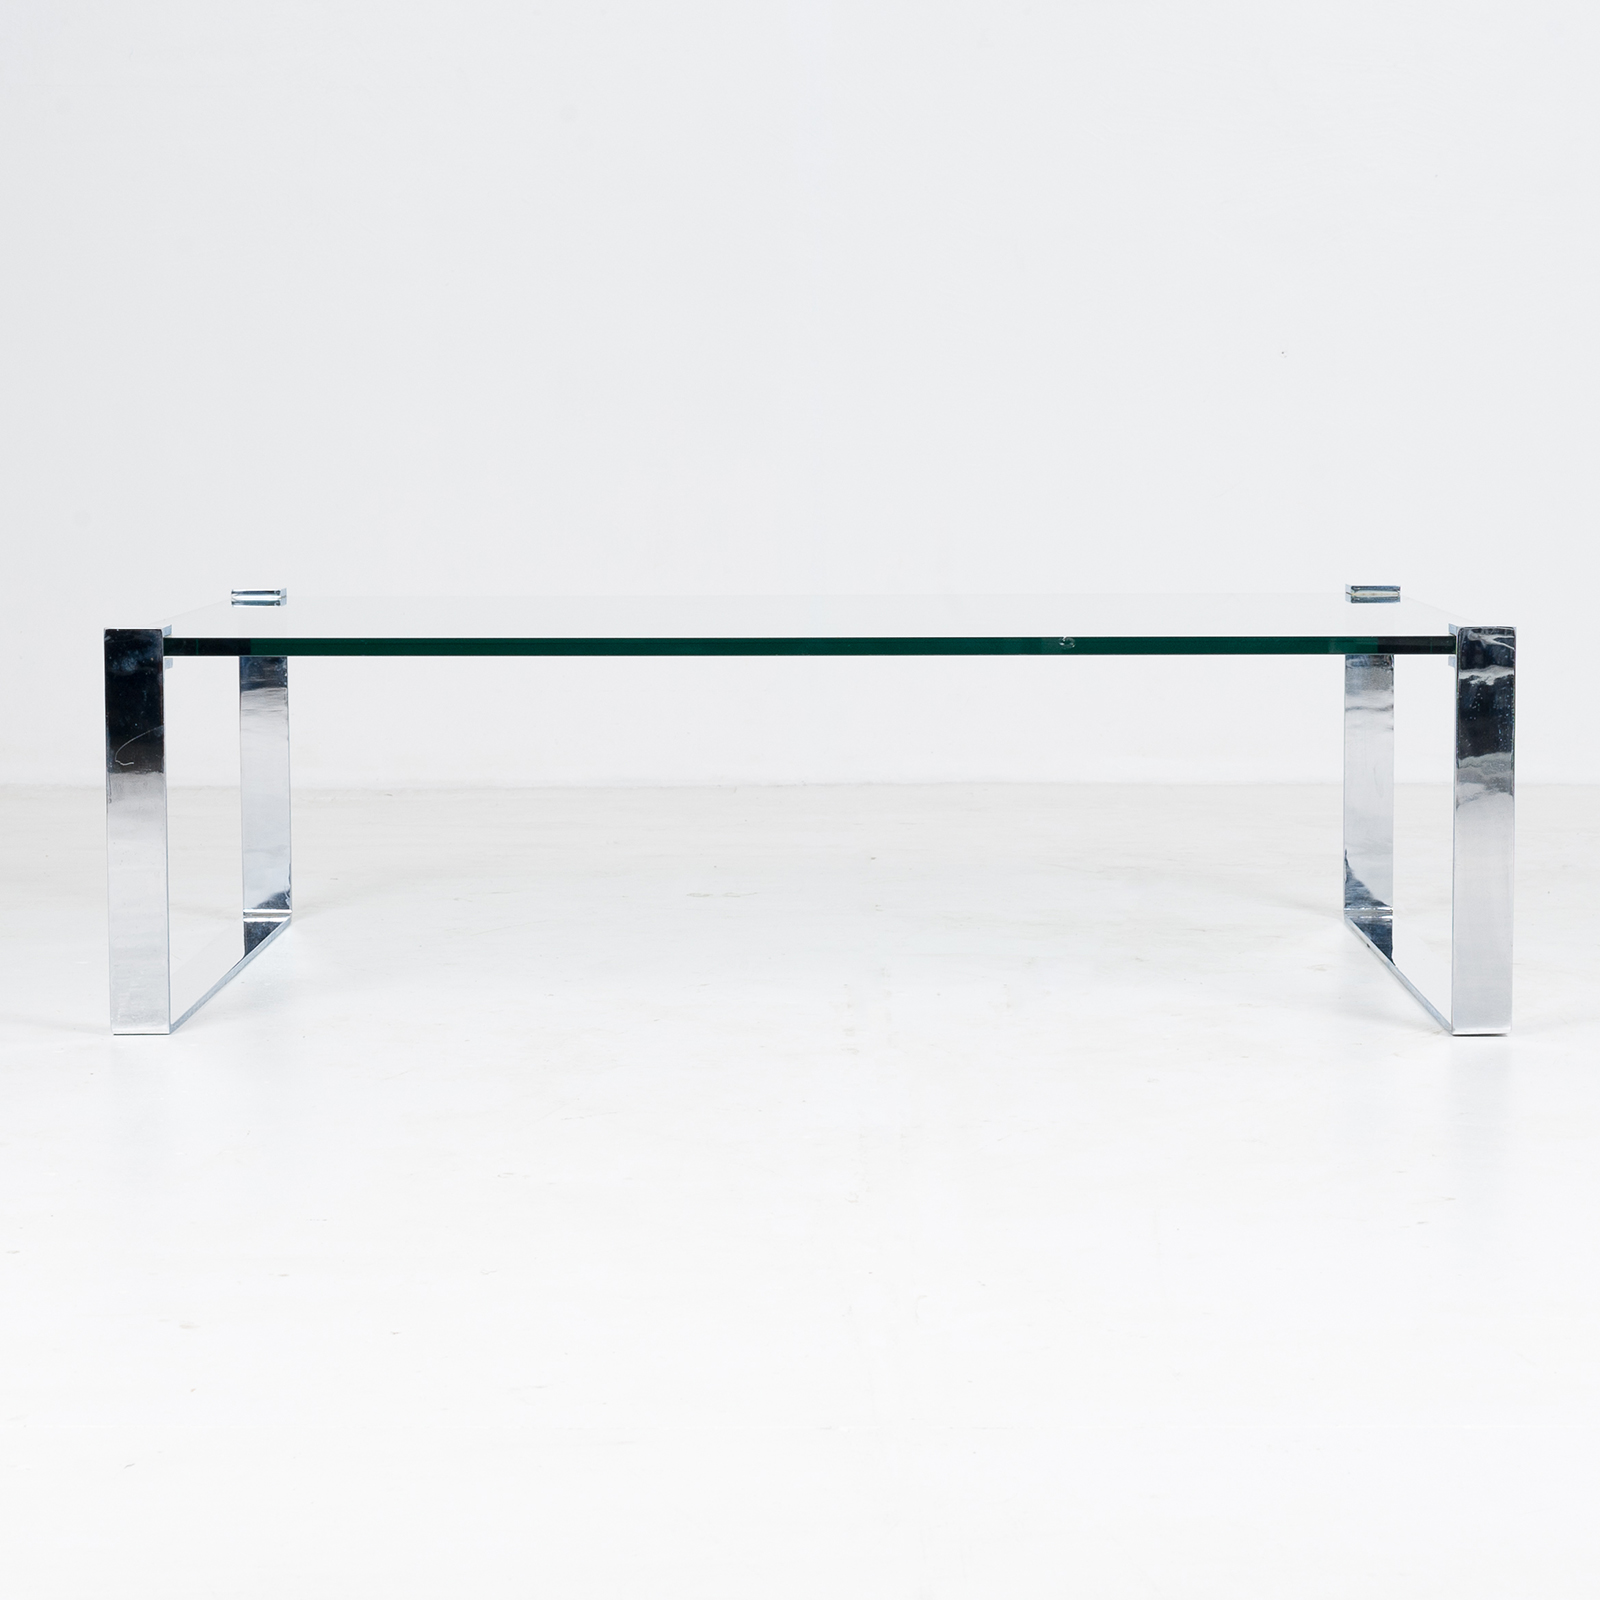 Model K 831 Rectangular Coffee Table With Glass And Polished Chrome By Friedrich Wilhelm Moller For Ronald Schmitt, 1970s, Germany 87